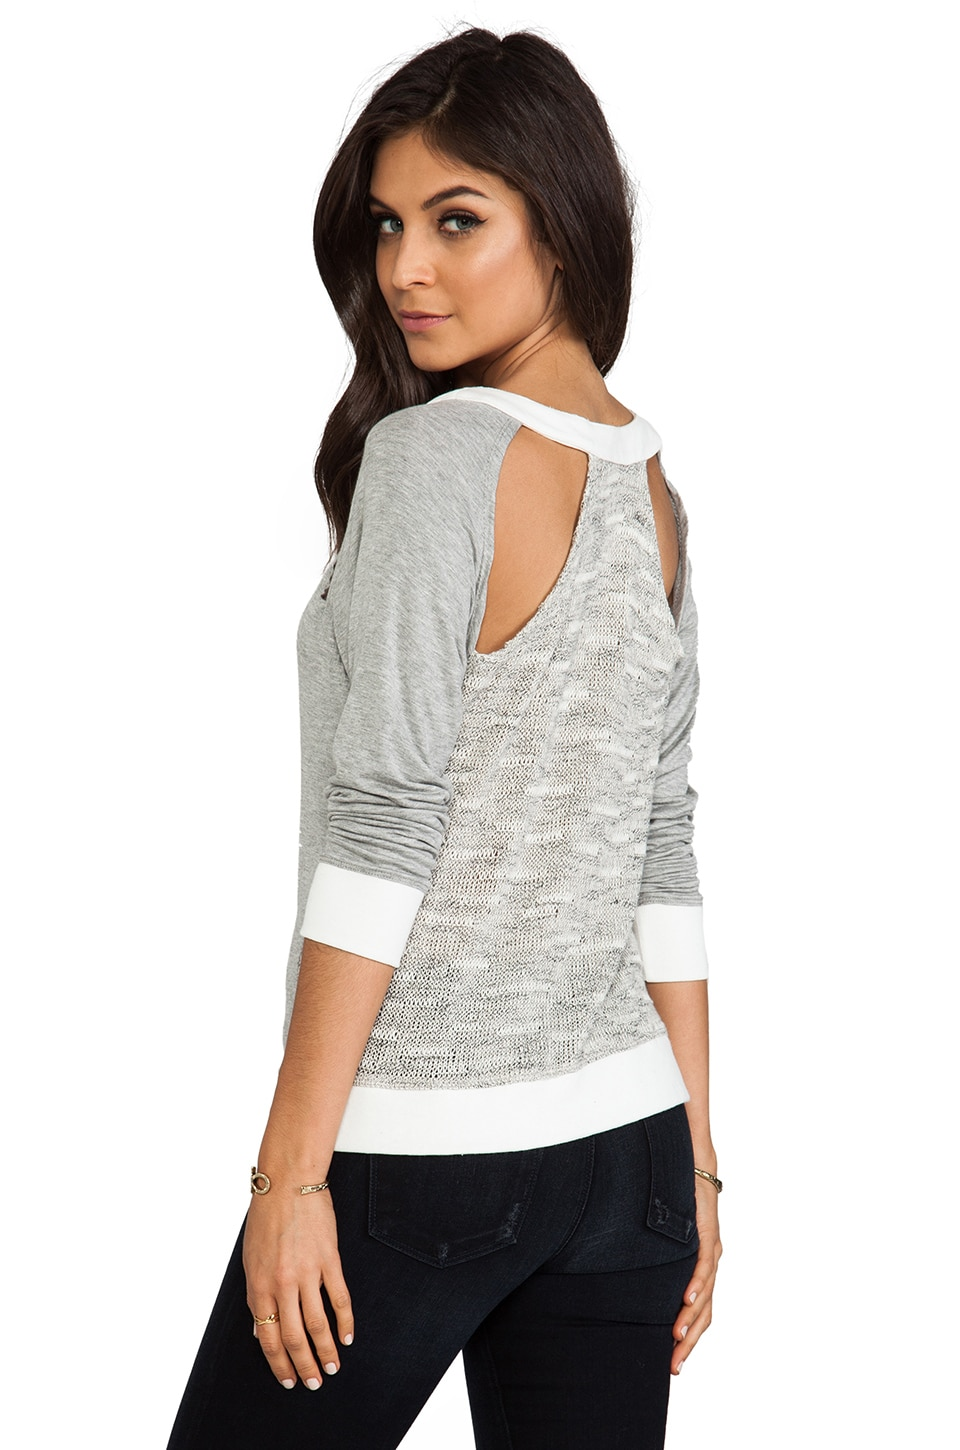 WOODLEIGH Rue Top in Heather Grey